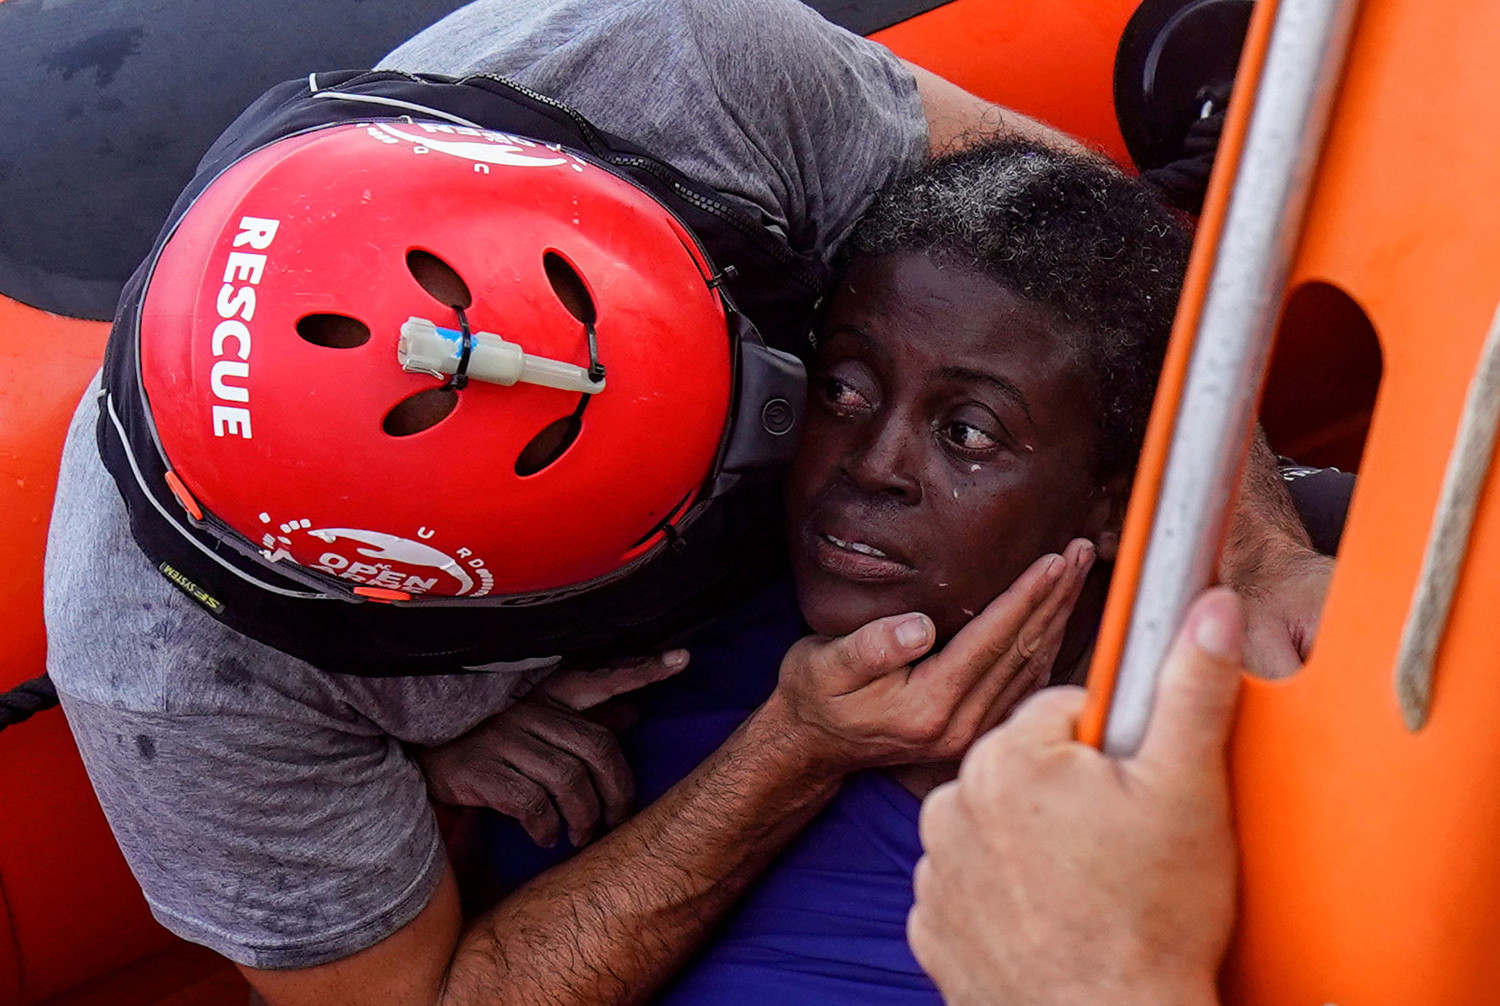 A crew member of the Spanish nongovernmental organization Proactiva Open Arms comforts a rescued African migrant July 17 in central Mediterranean Sea. The main mission of the NGO is sea rescues of refugees that arrive in Europe fleeing wars, persecution or poverty.